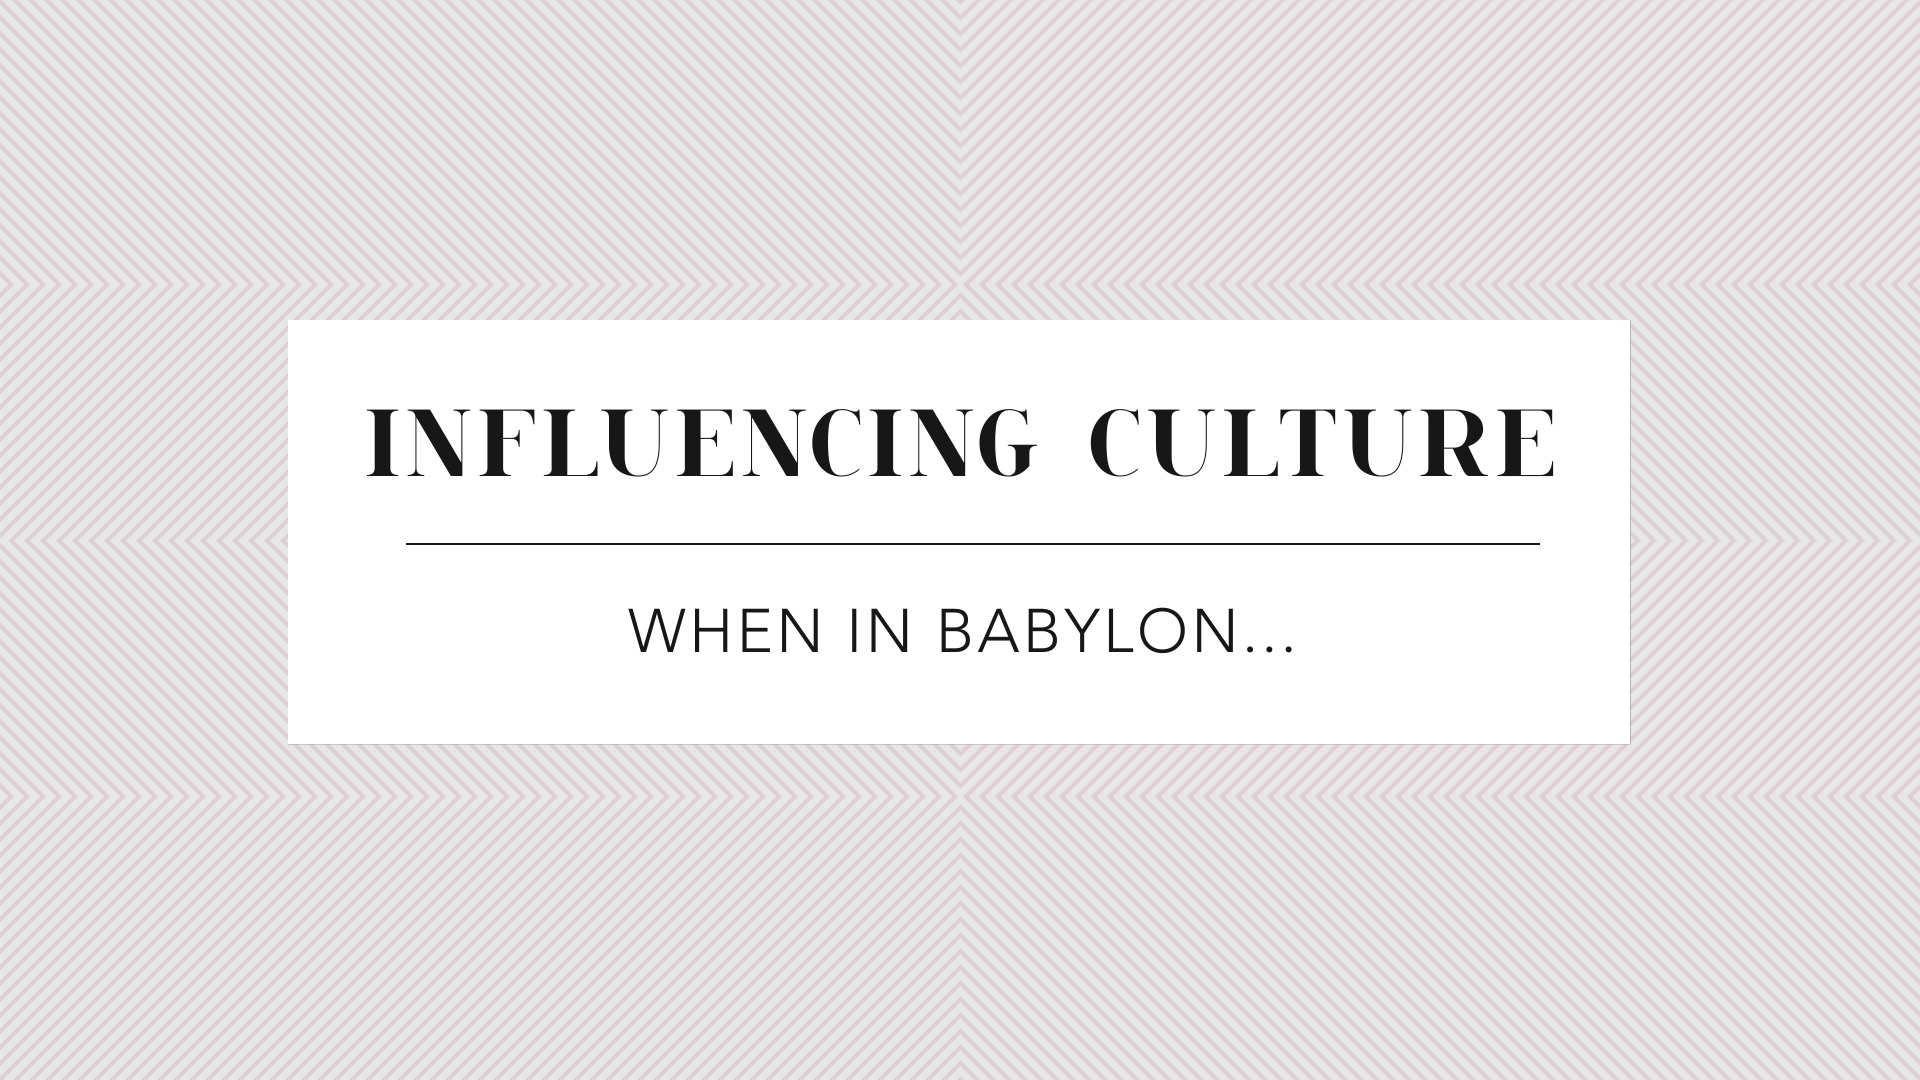 When in Babylon…